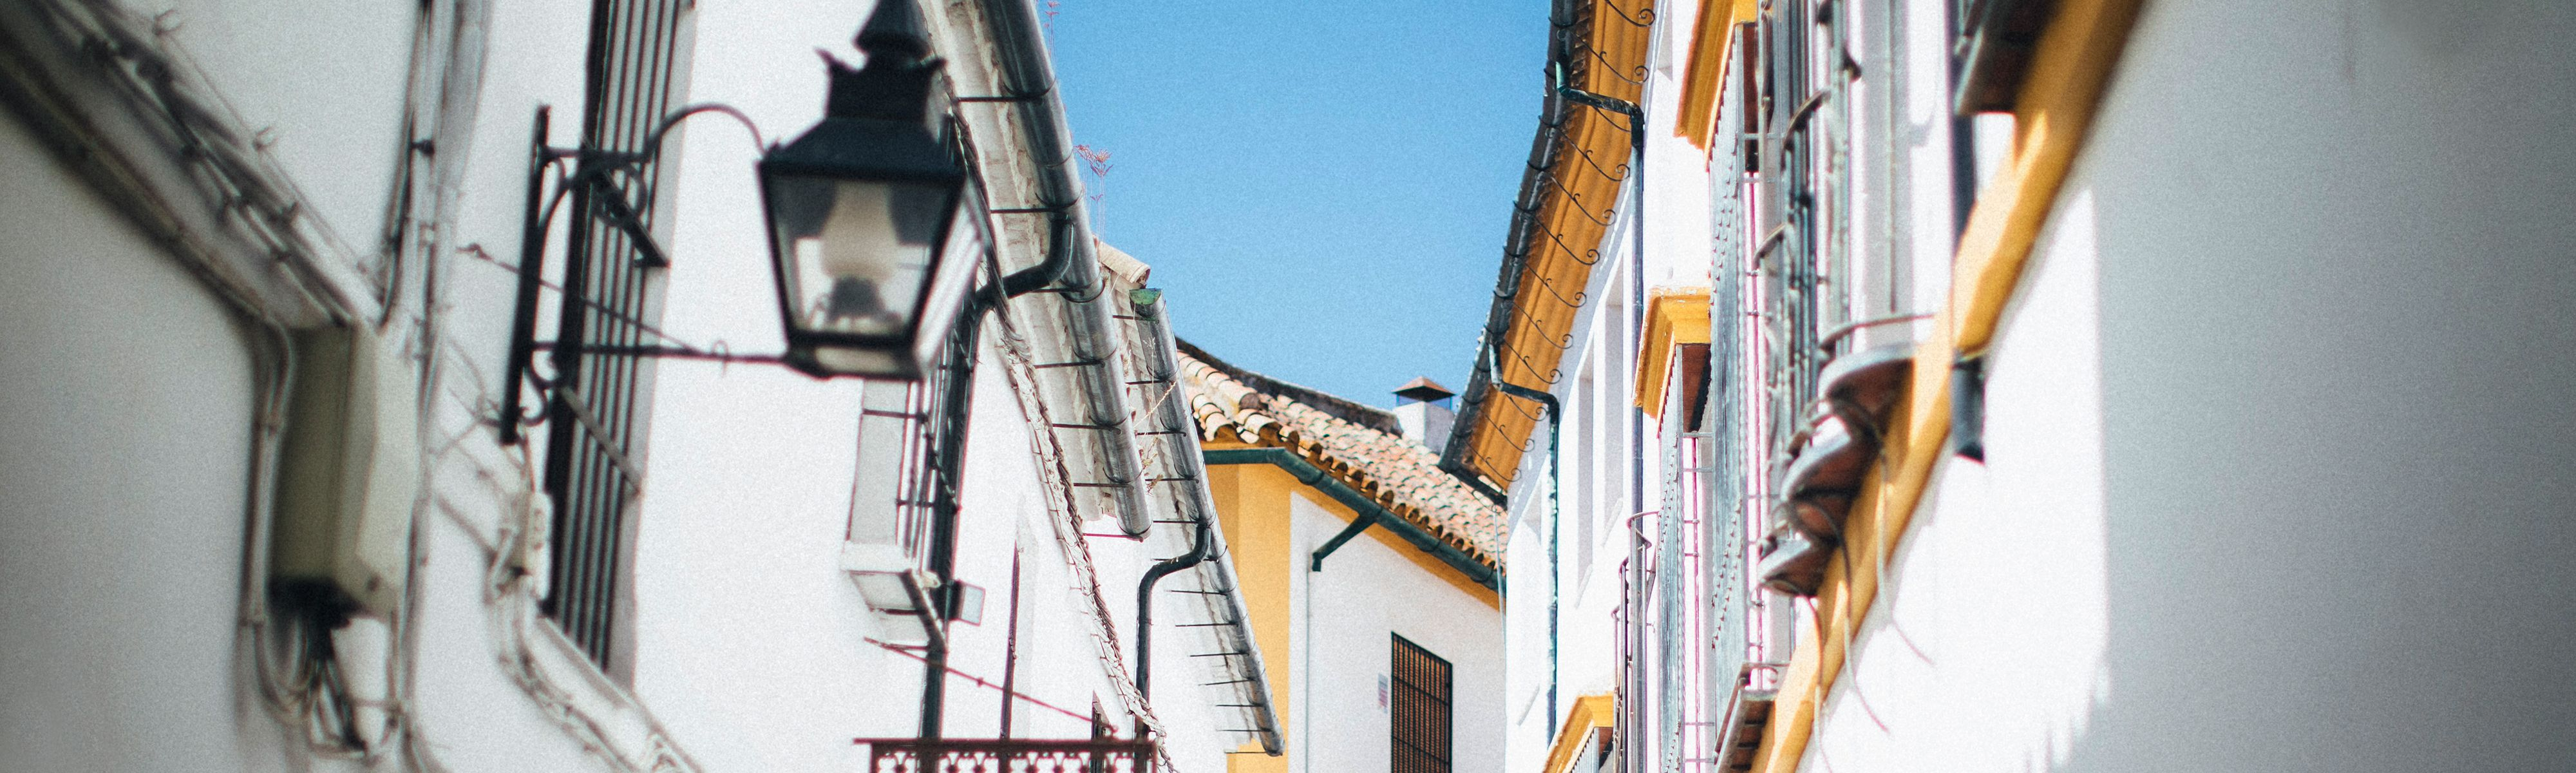 white building with bright yellow trim in spain